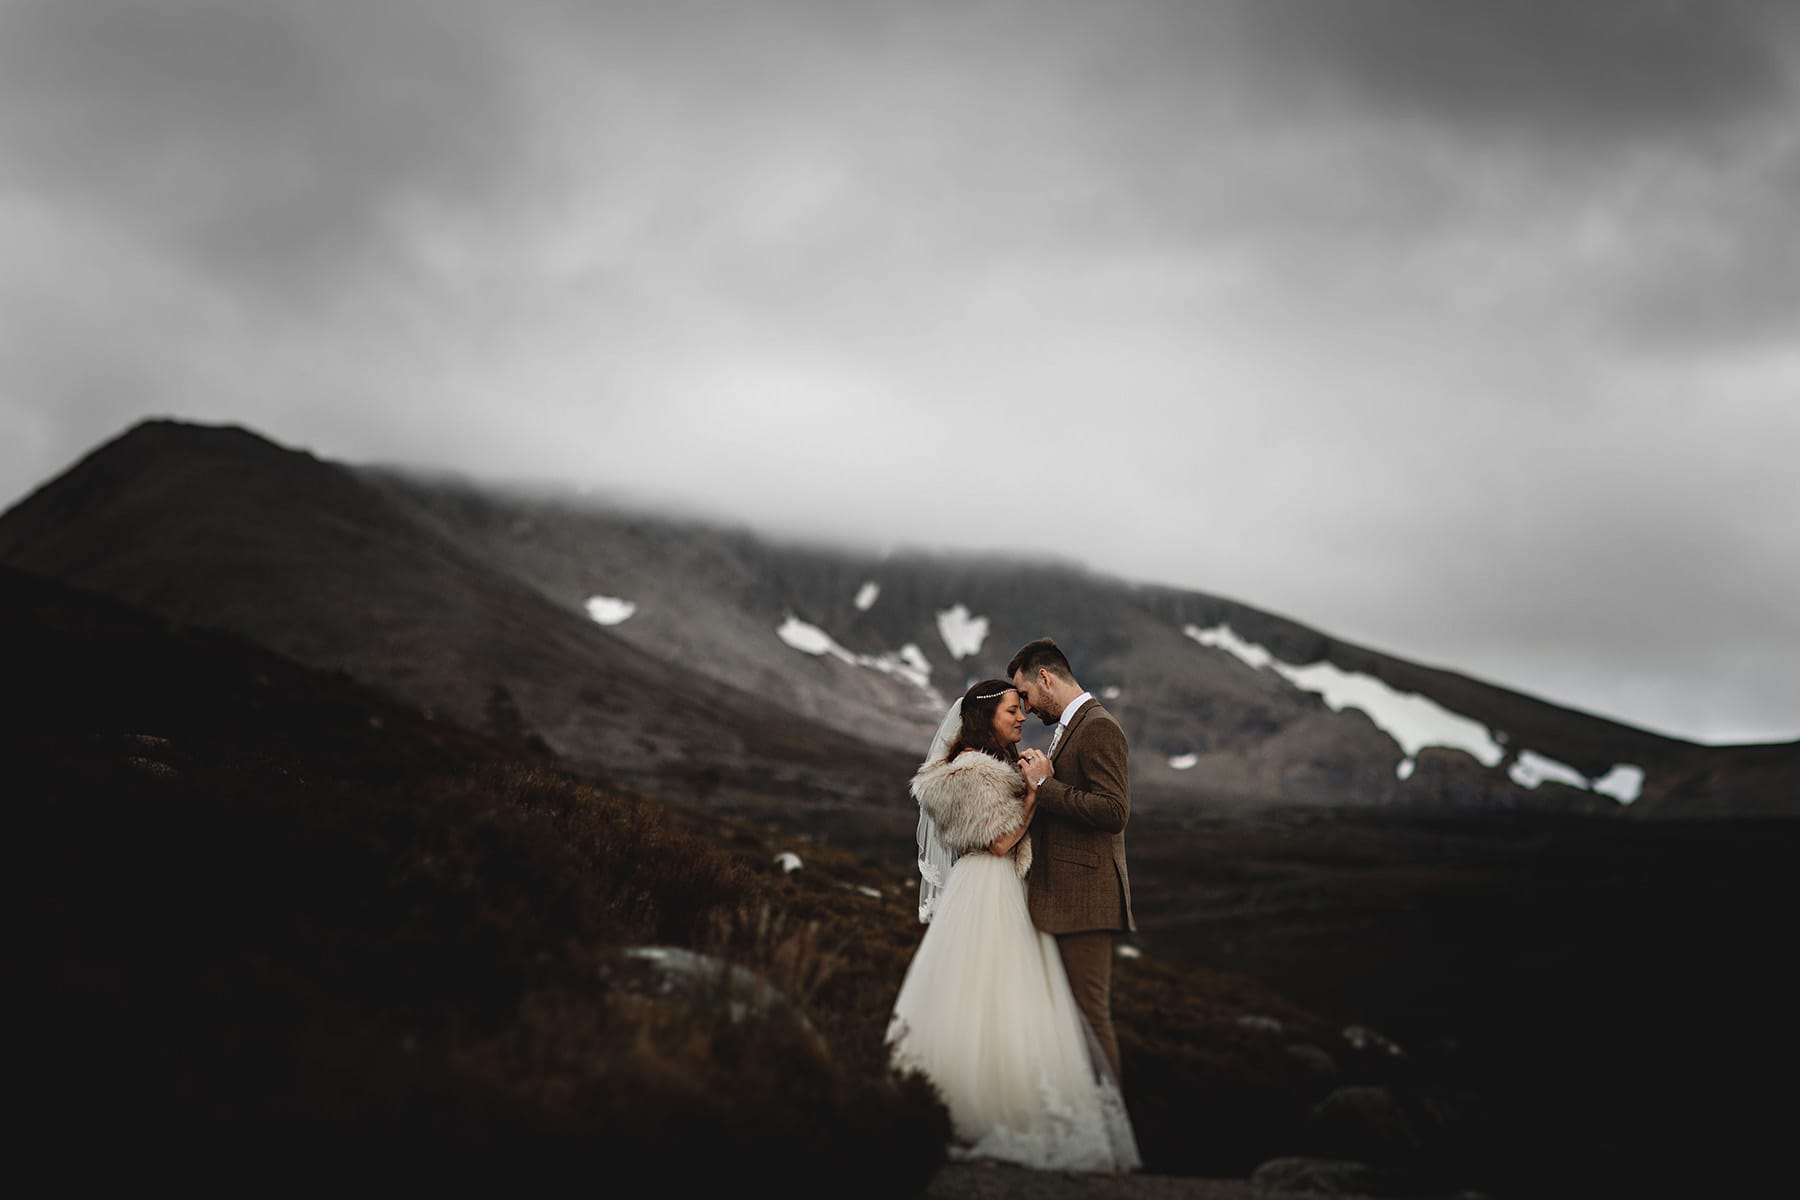 the bride and groom stood together in the scottish mountiant with snow behind them